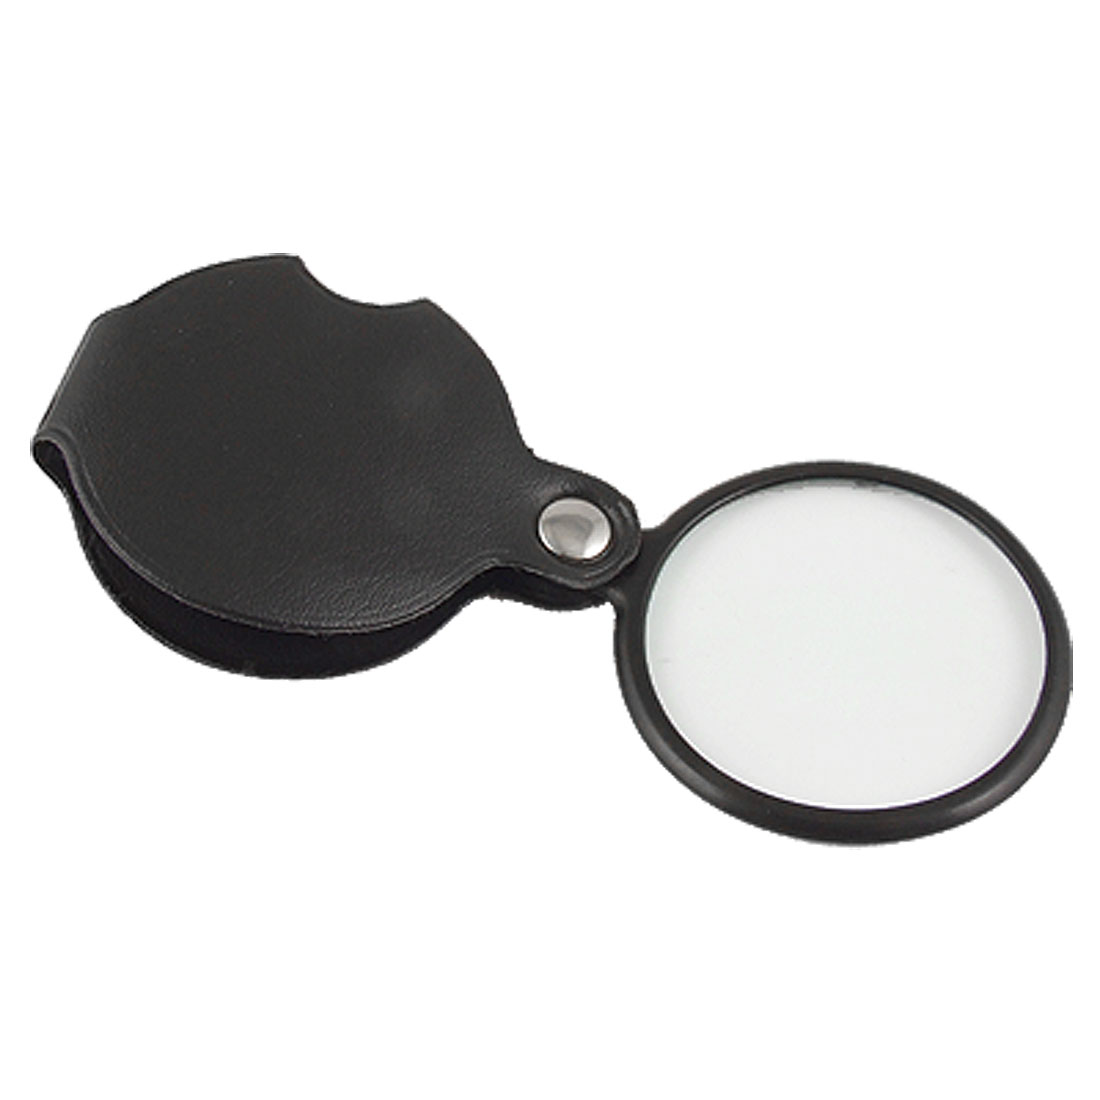 50mm Lens Diameter 5X Round Magnifying Glass w Black Cover